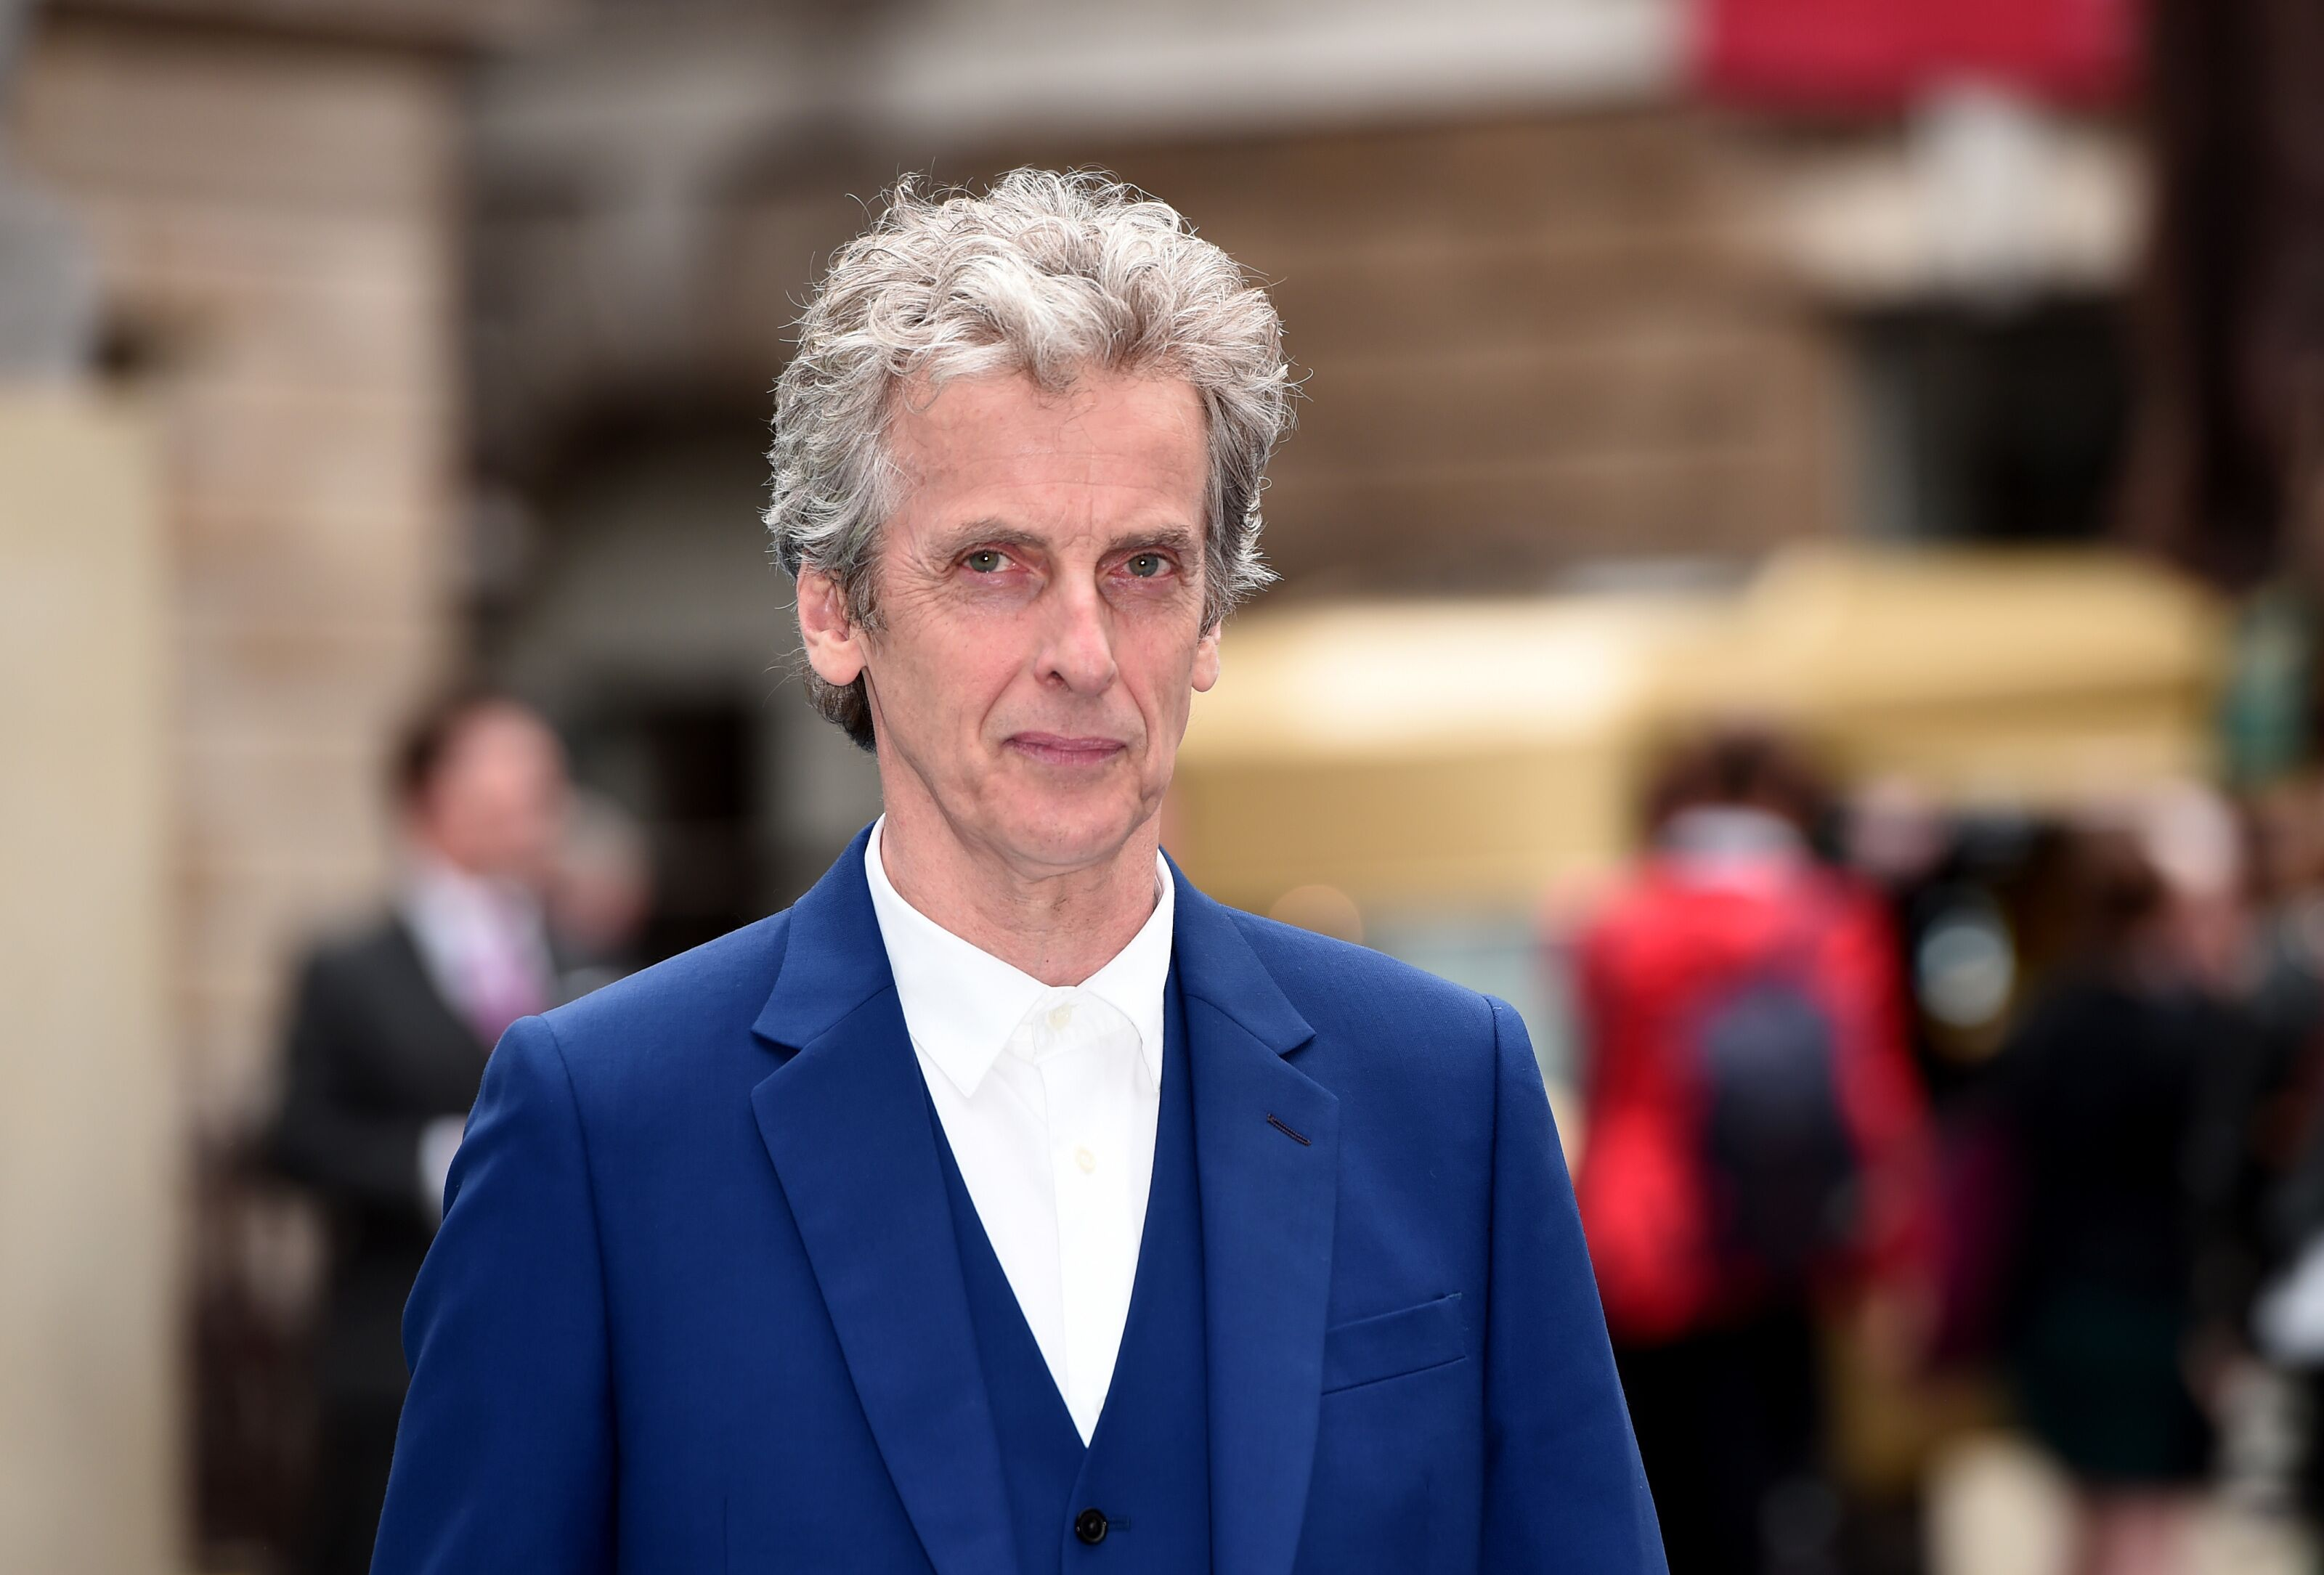 Peter Capaldi and Pete Davidson join James Gunn's Suicide Squad